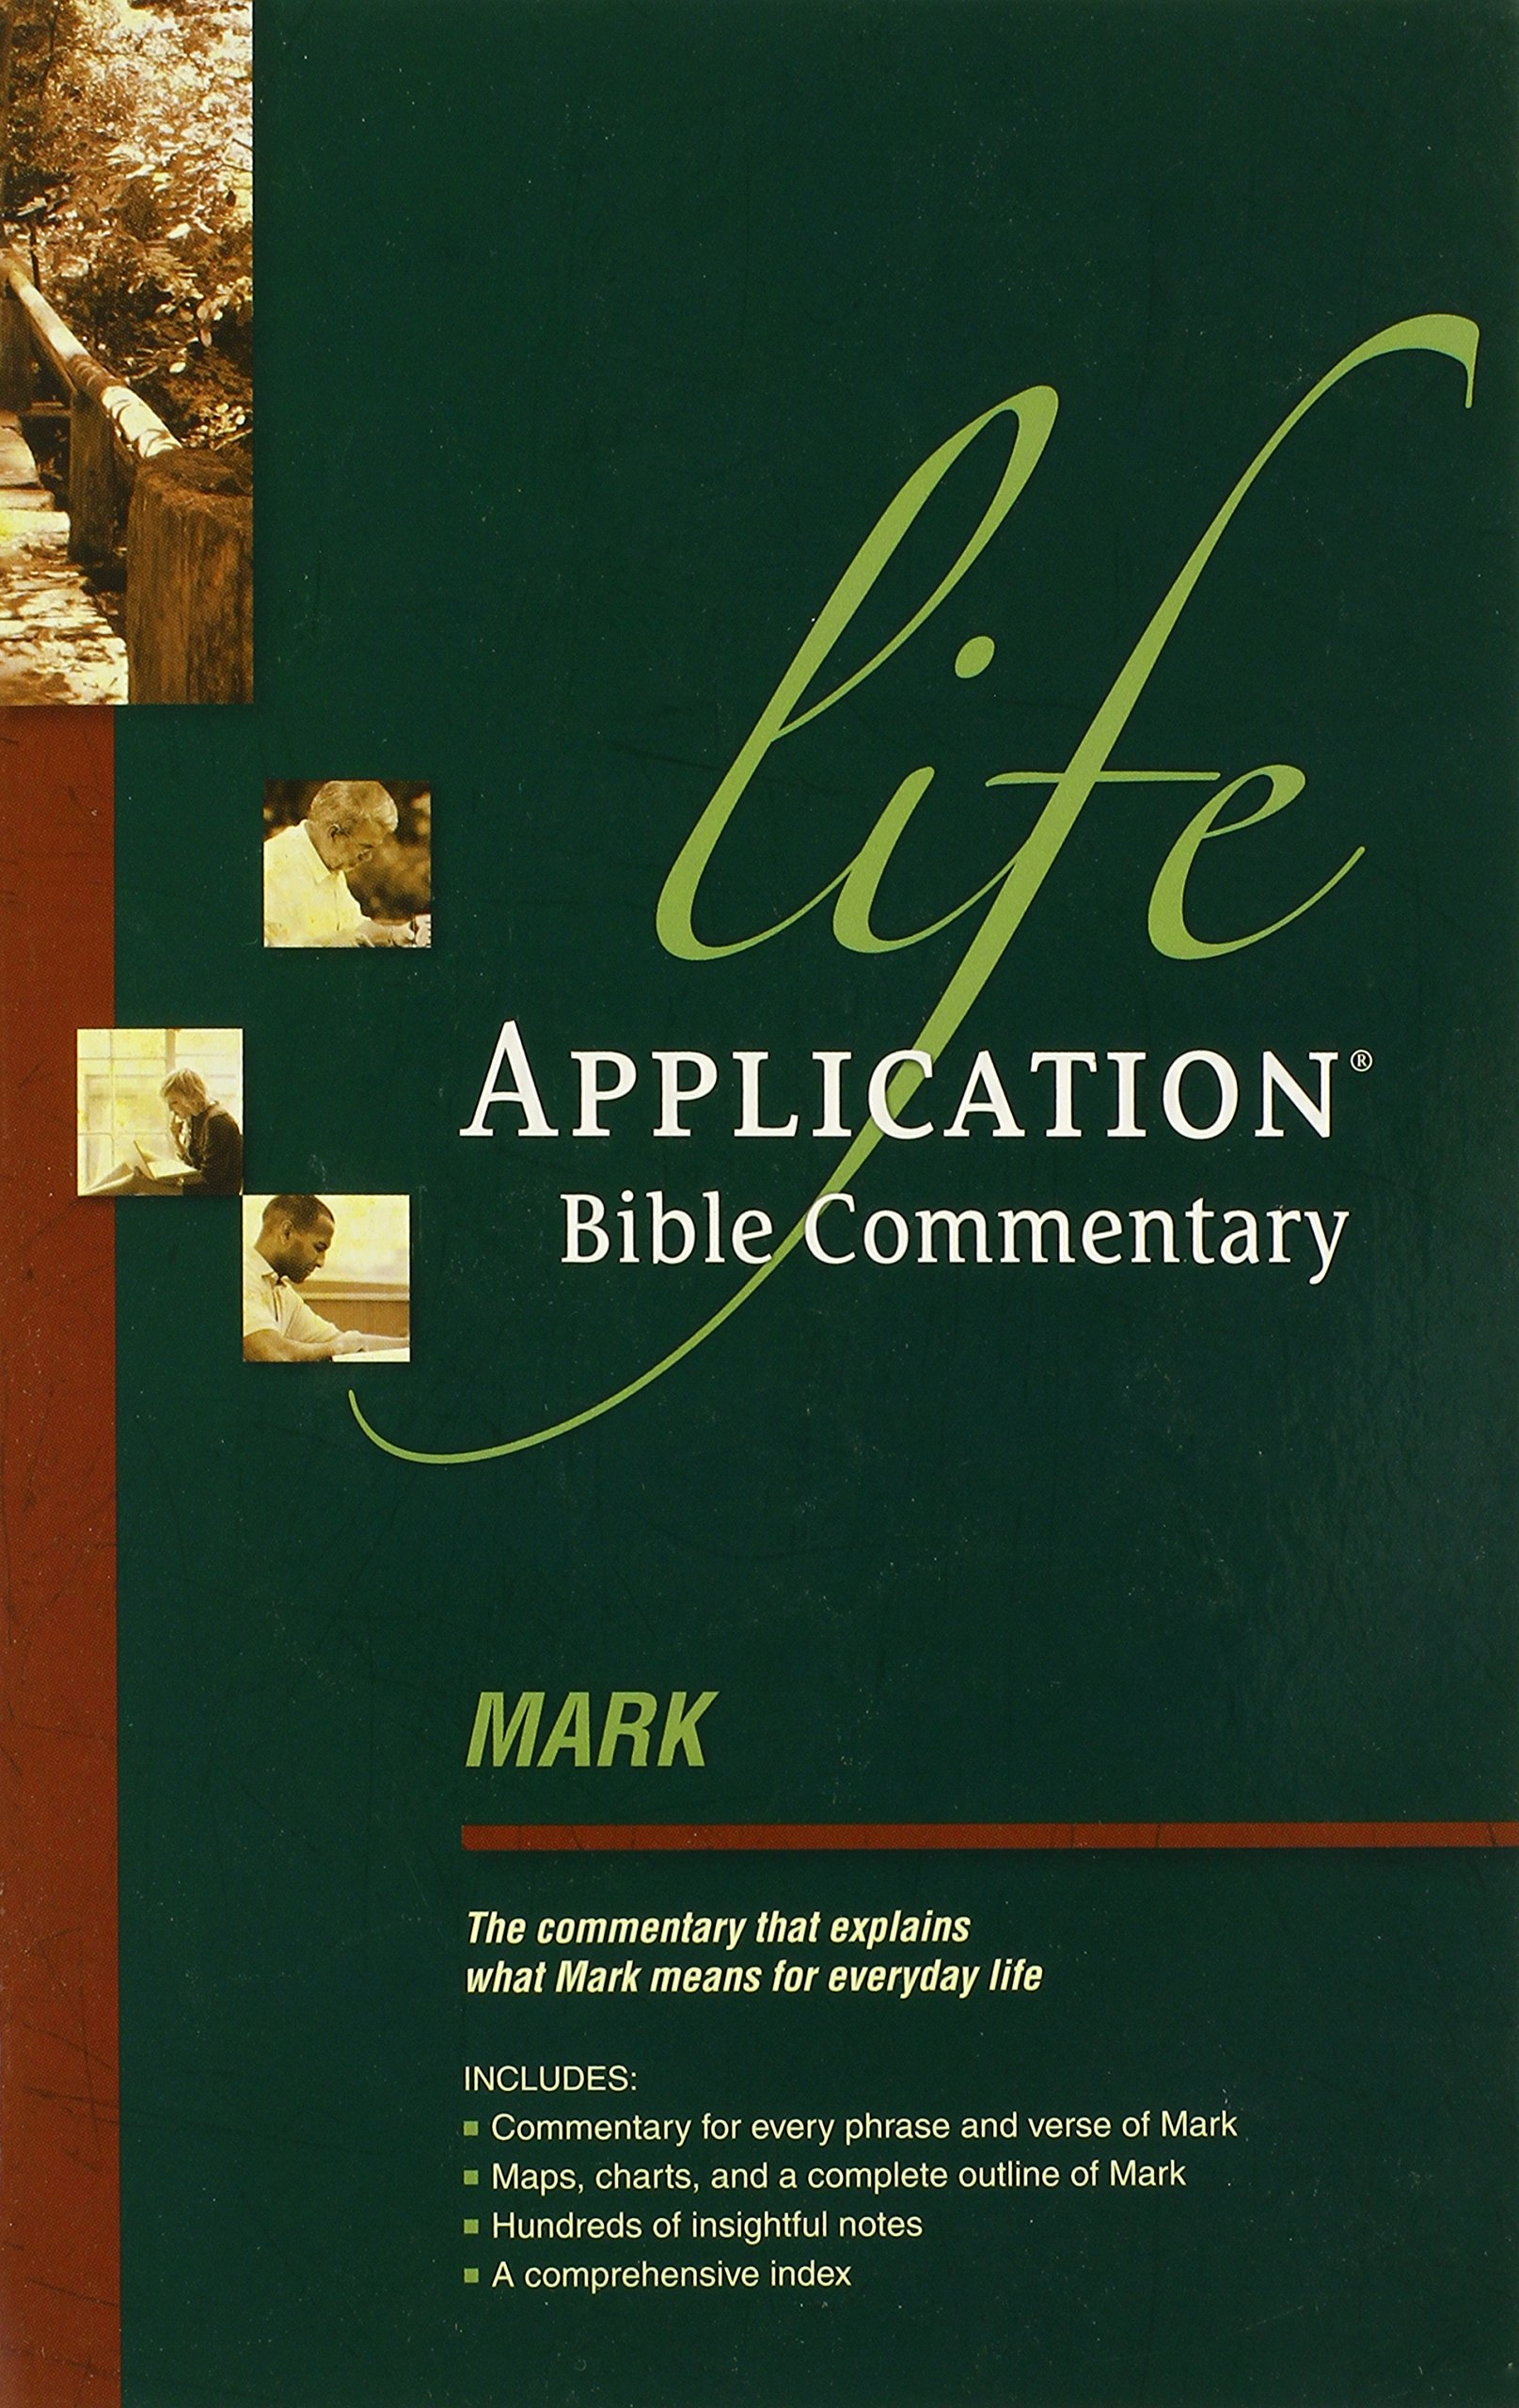 LIFE APPLICATION BIBLE COMMENTARY PDF DOWNLOAD